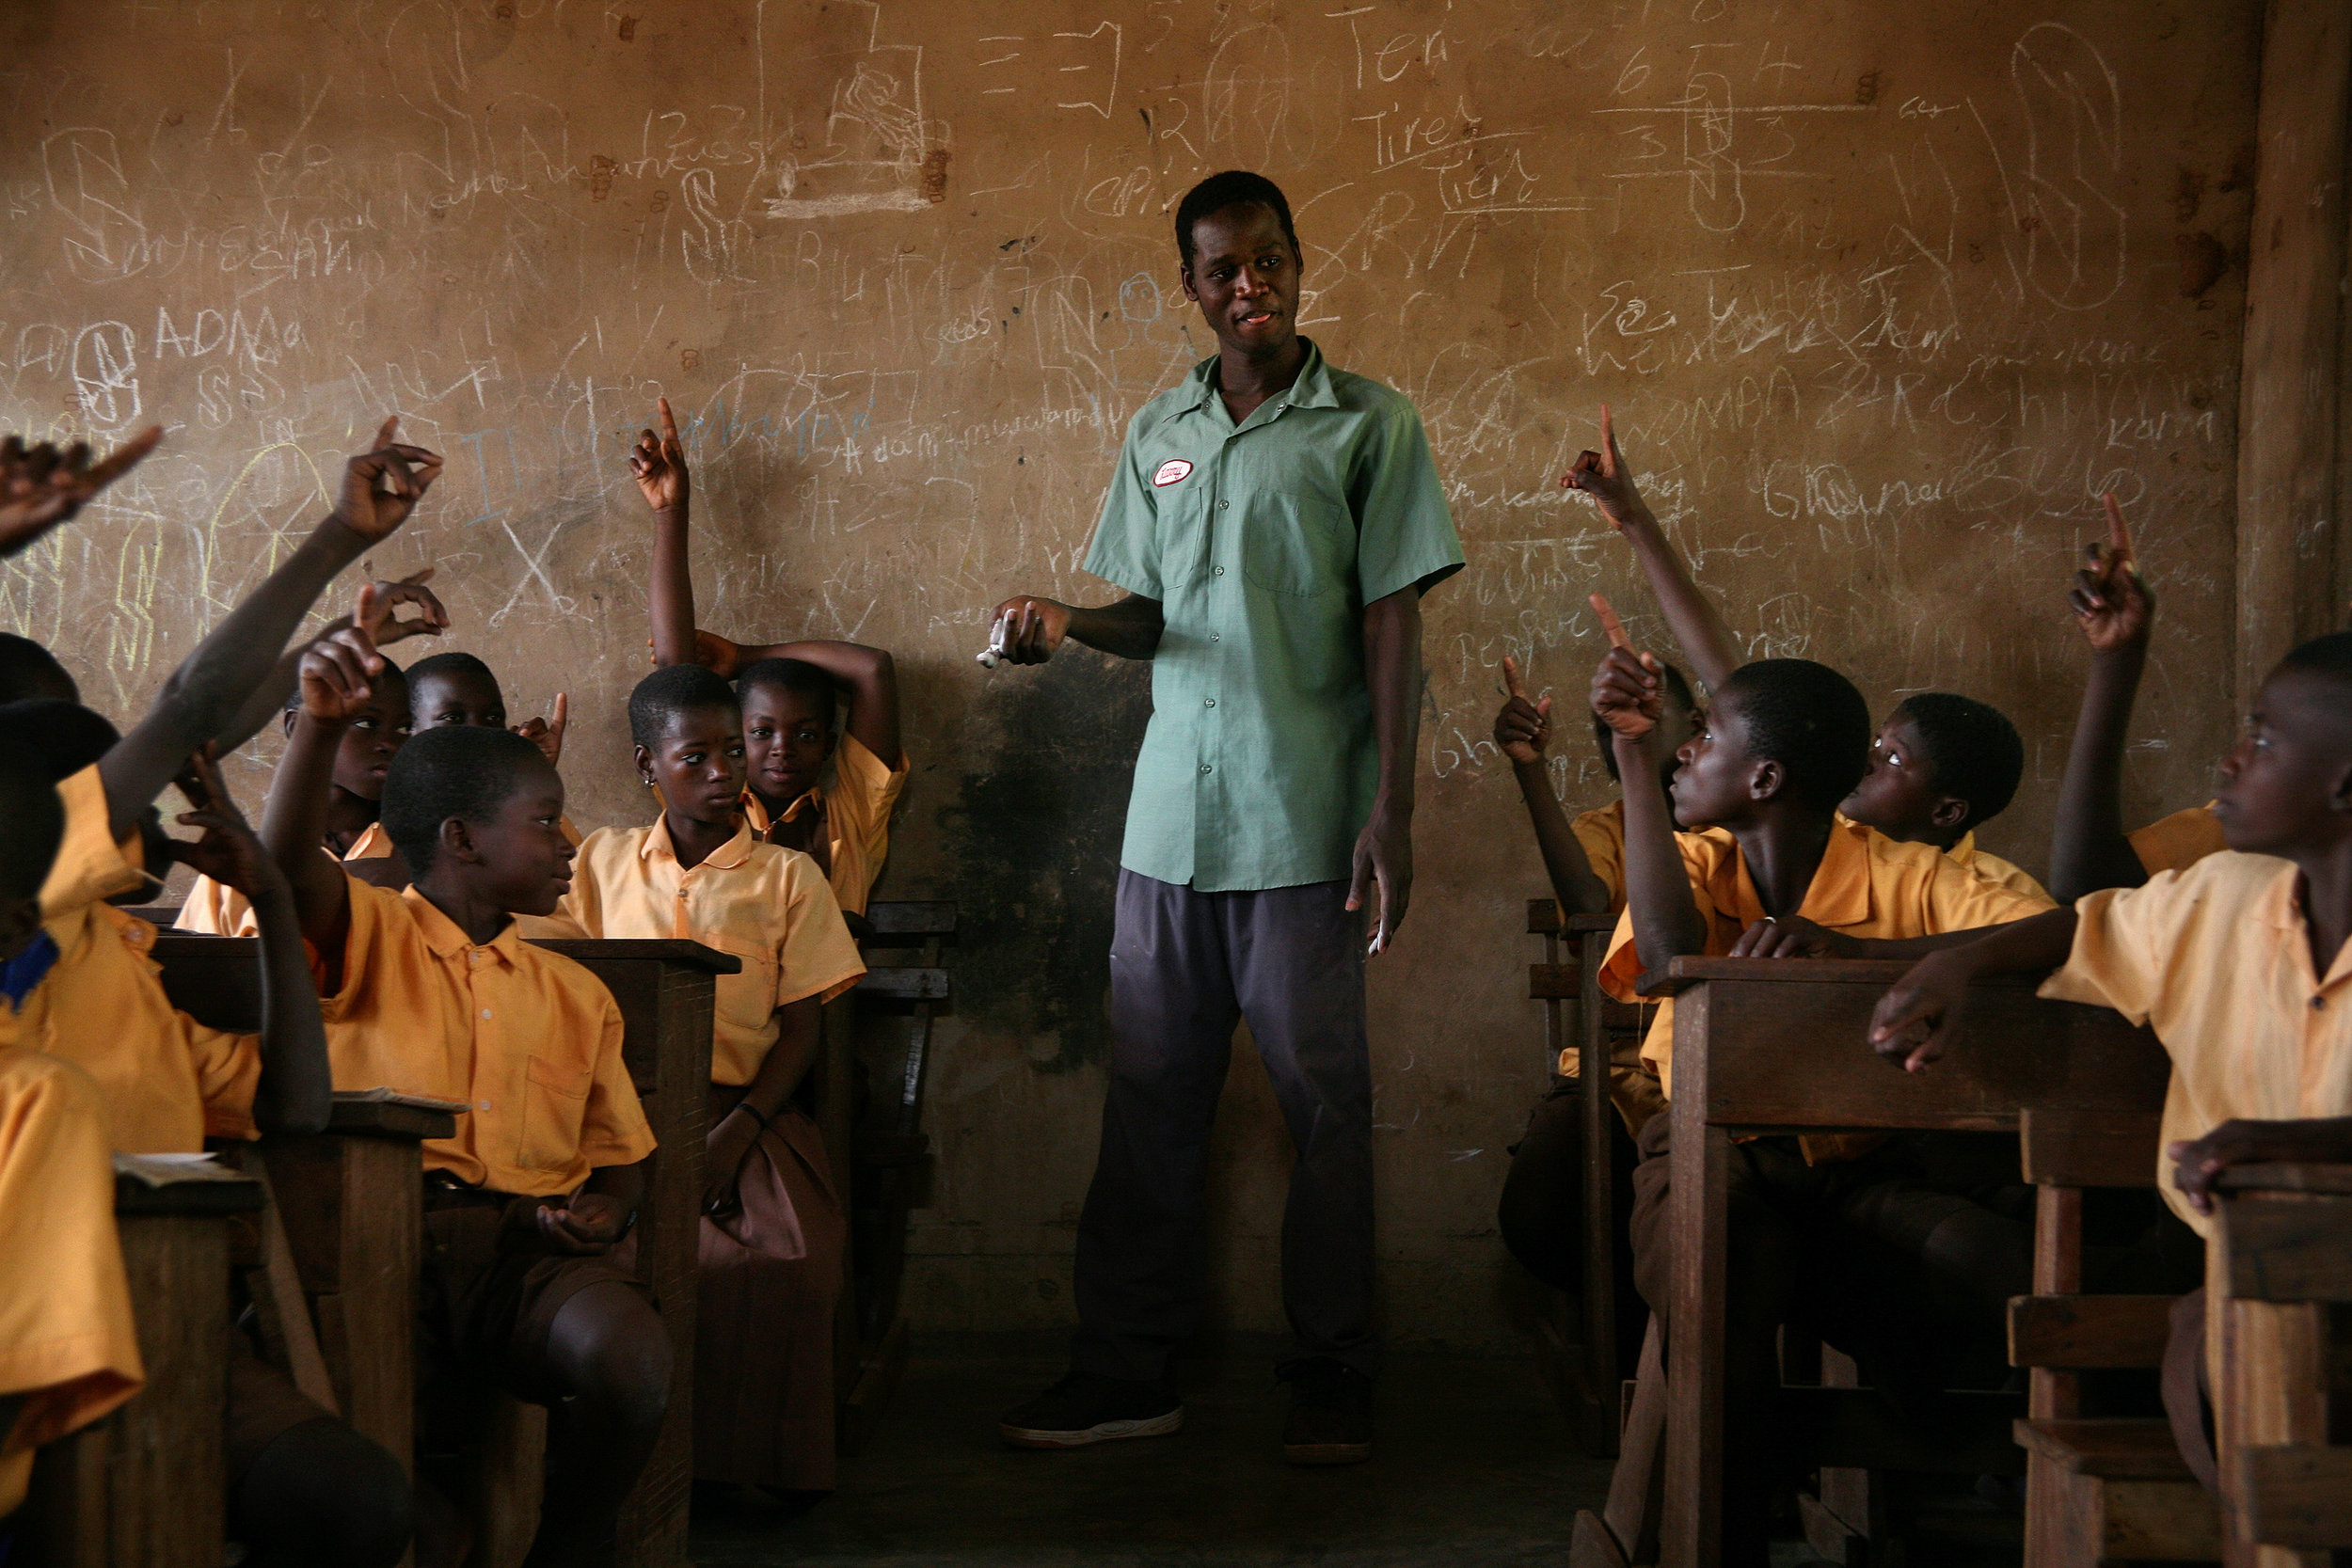 Sualey, a Ghanaian National Health Service Volunteer, quizzes children on Guinea worm prevention in the Wantugu Roman Catholic Primary School in Wantugu, Ghana on March 14, 2007.